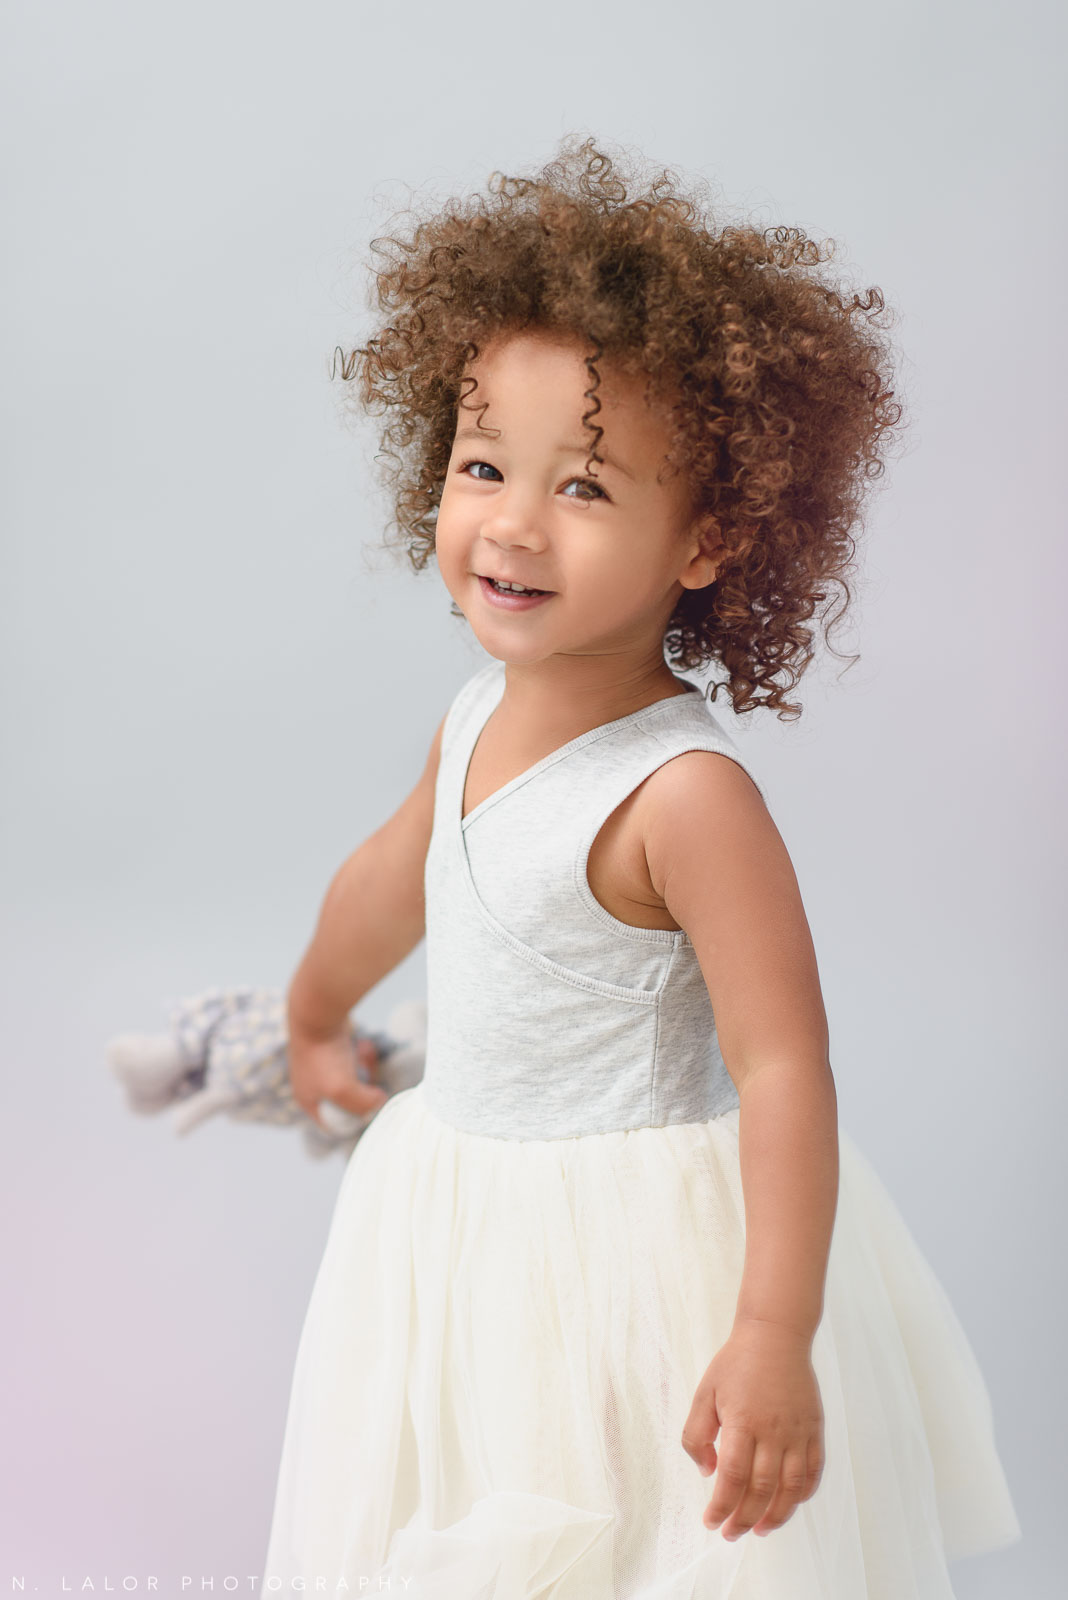 2-year old girl. Studio portrait session with N. Lalor Photography in Greenwich, Connecticut.